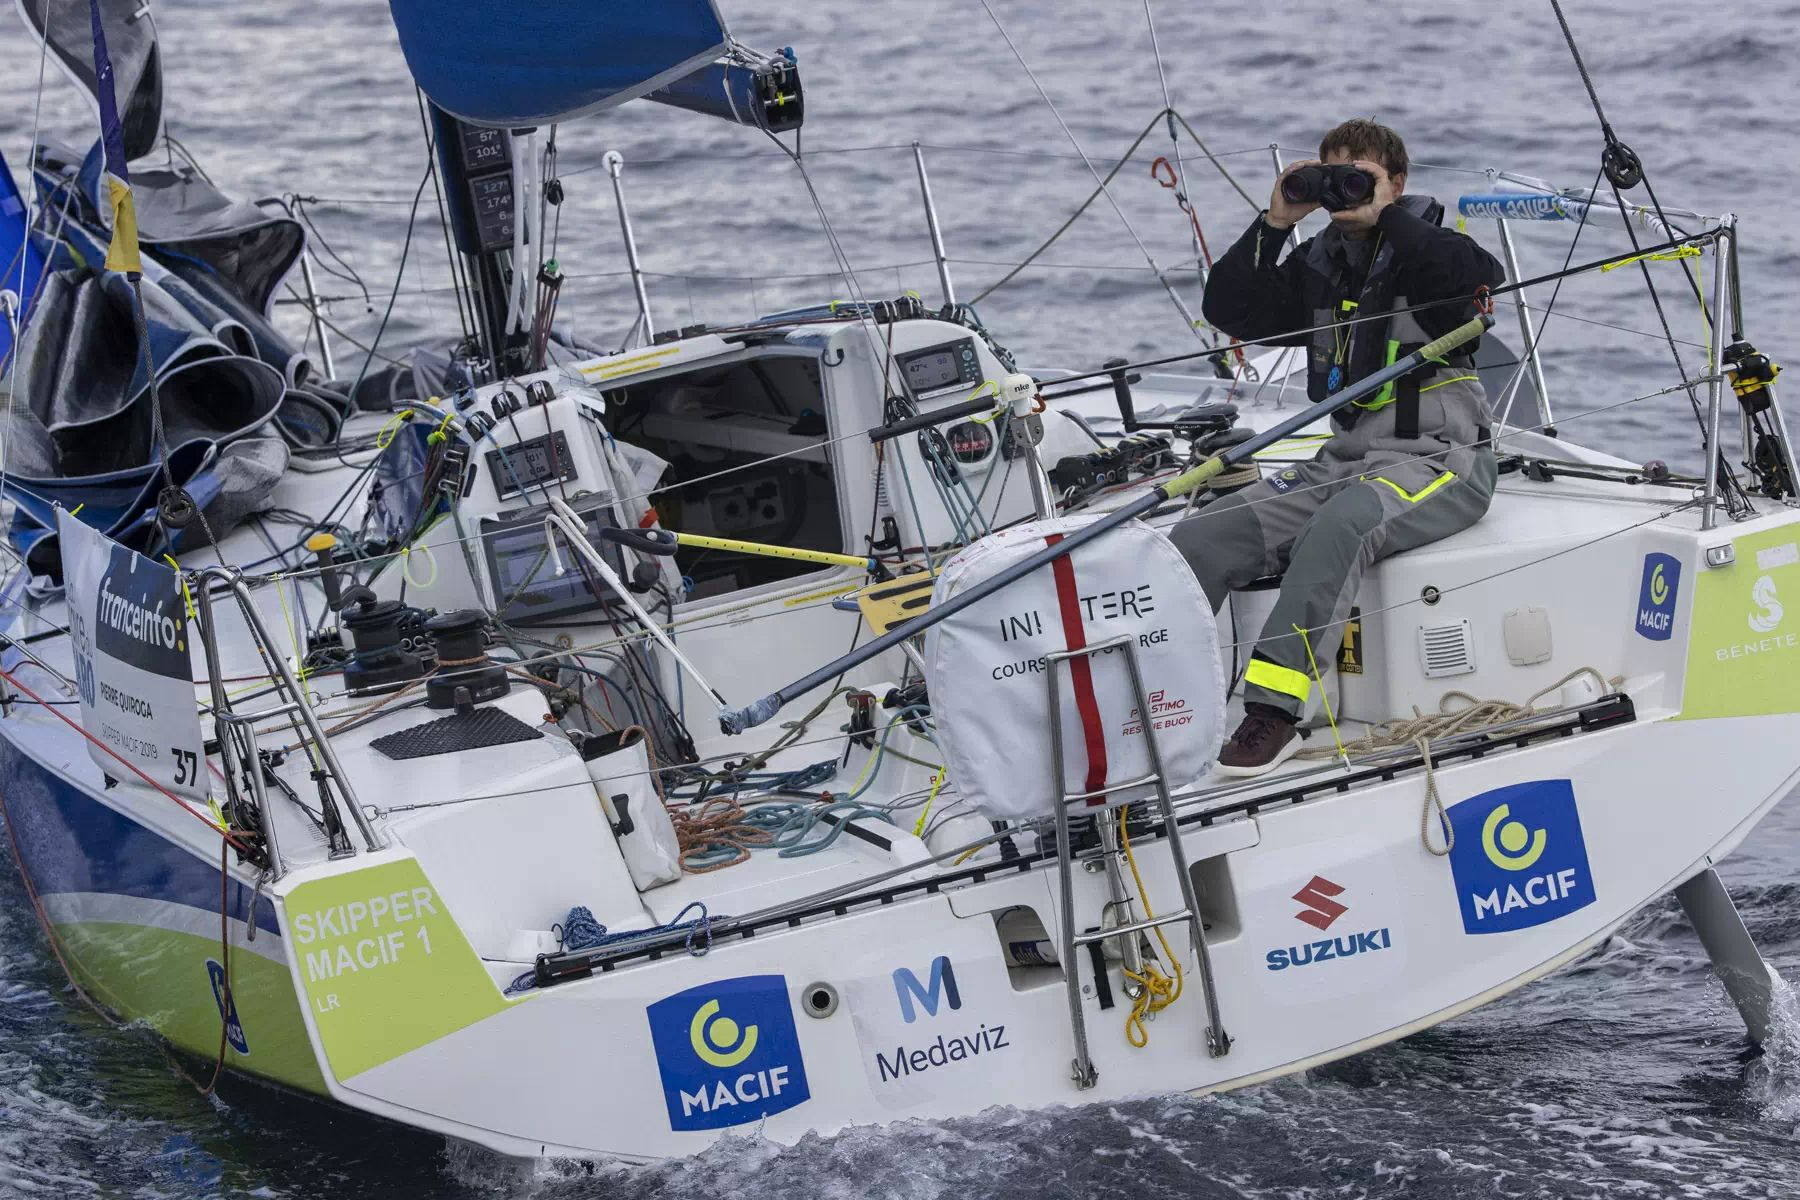 Pierre Quiroga sailing, with binoculars to his eyes.